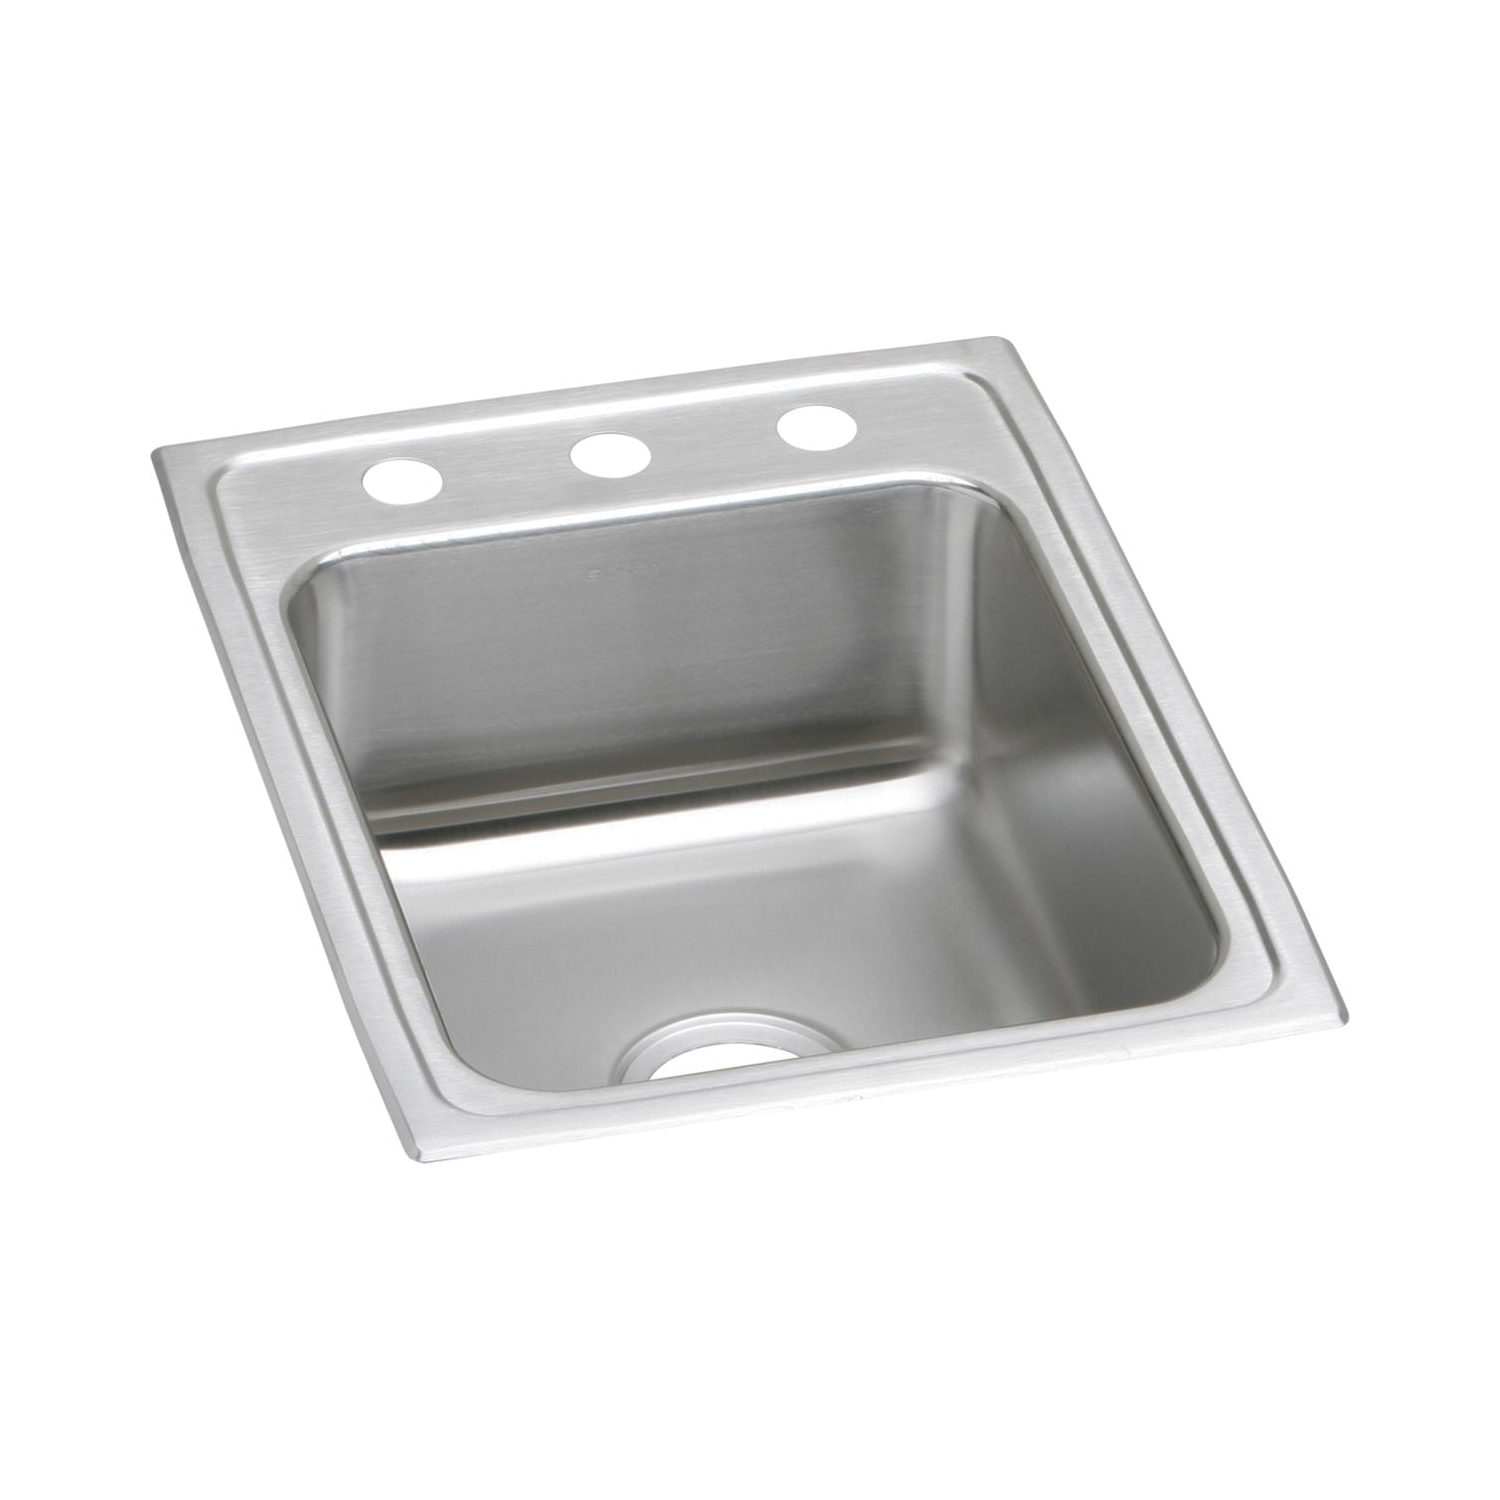 Elkay® LRAD1722651 Kitchen Sink, Gourmet, Rectangular, 13-1/2 in L x 16 in W x 6-3/8 in D Bowl, 1 Faucet Hole, 17 in L x 22 in W x 6-1/2 in H, Top Mount, Stainless Steel, Lustertone